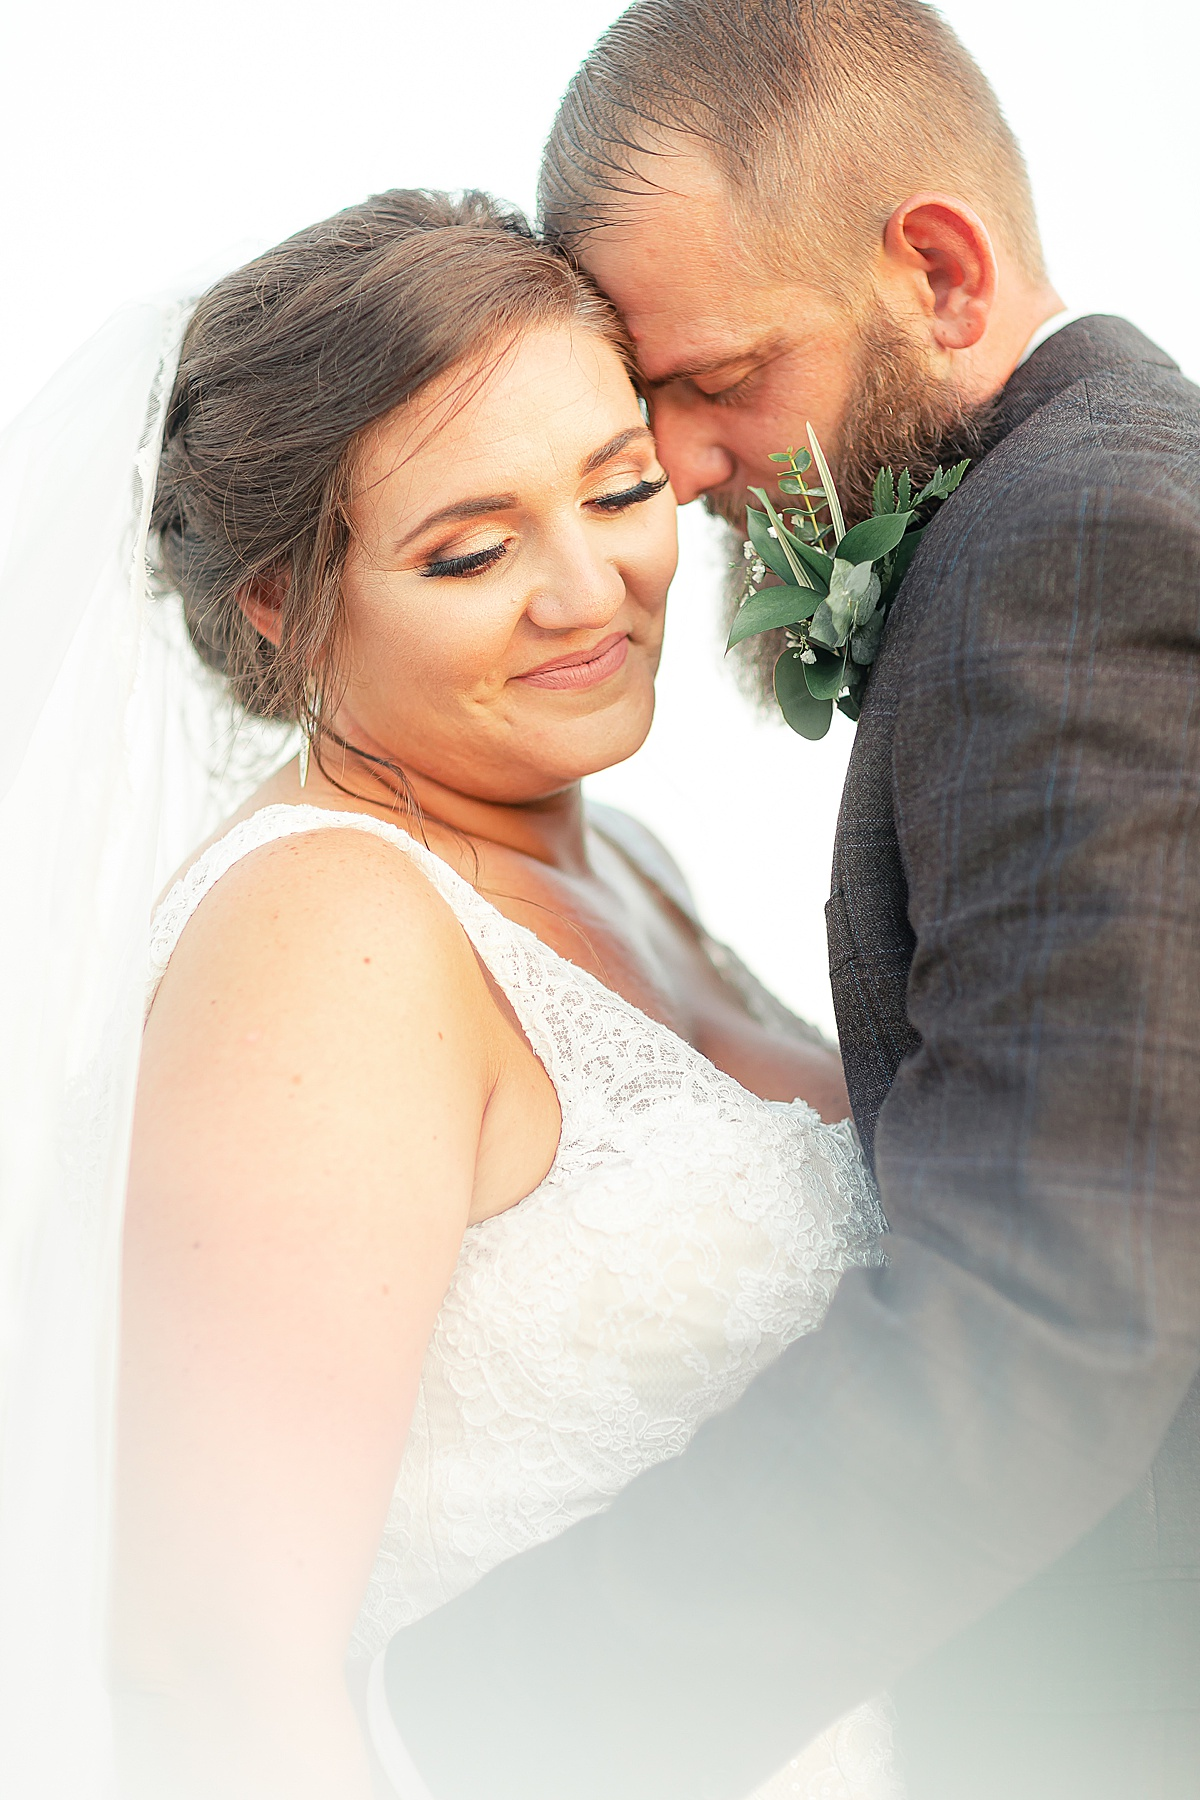 Rustic-Texas-Wedding-Hollow-Creek-Ranch-Carly-Barton-Photography_0083.jpg